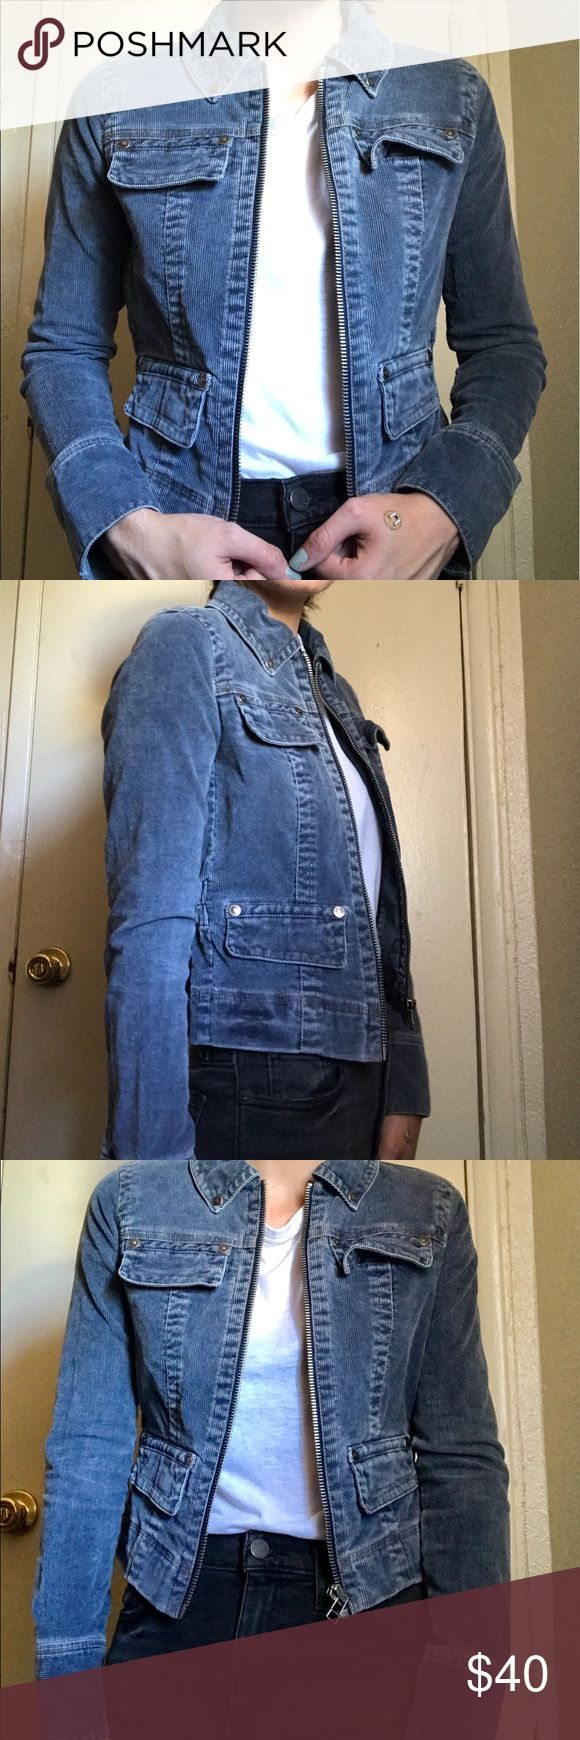 Tommy Jean Corduroy Jacket The One With a Tommy Jeans jacket in denim corduroy. size S/P. barely worn. like new. zip up front and pocket detailing. bringing Britney denim on denim look back with bunching detailing on reverse side to give it that extra feminine touch. Tommy Hilfiger Jackets & Coats Jean Jackets